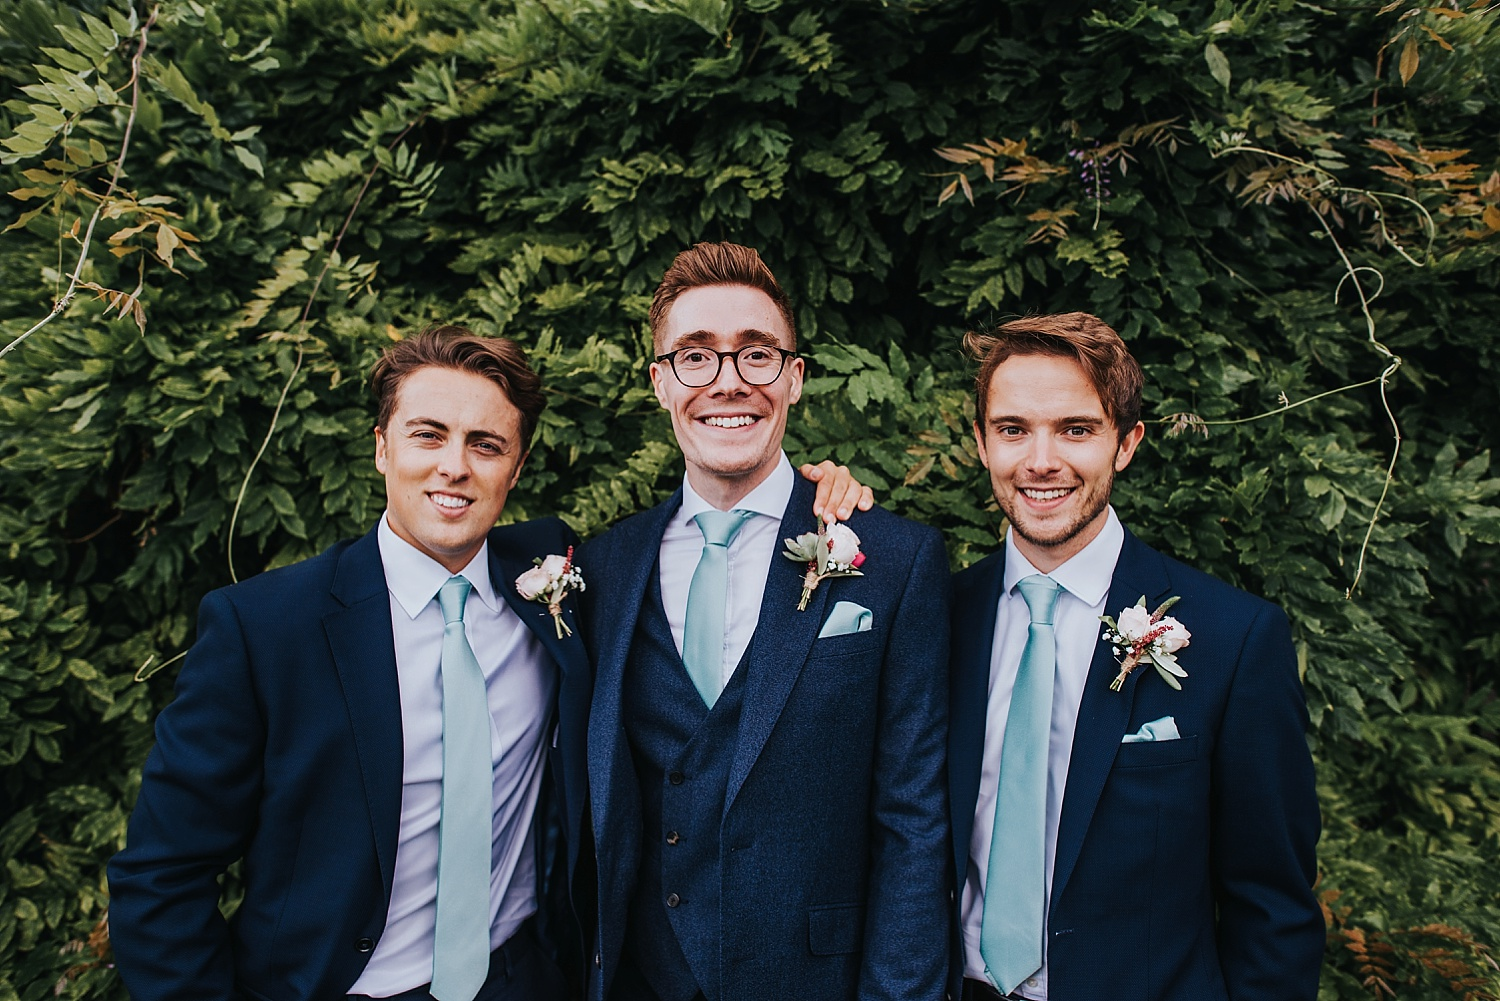 groom and groomsmen standing together on wedding day